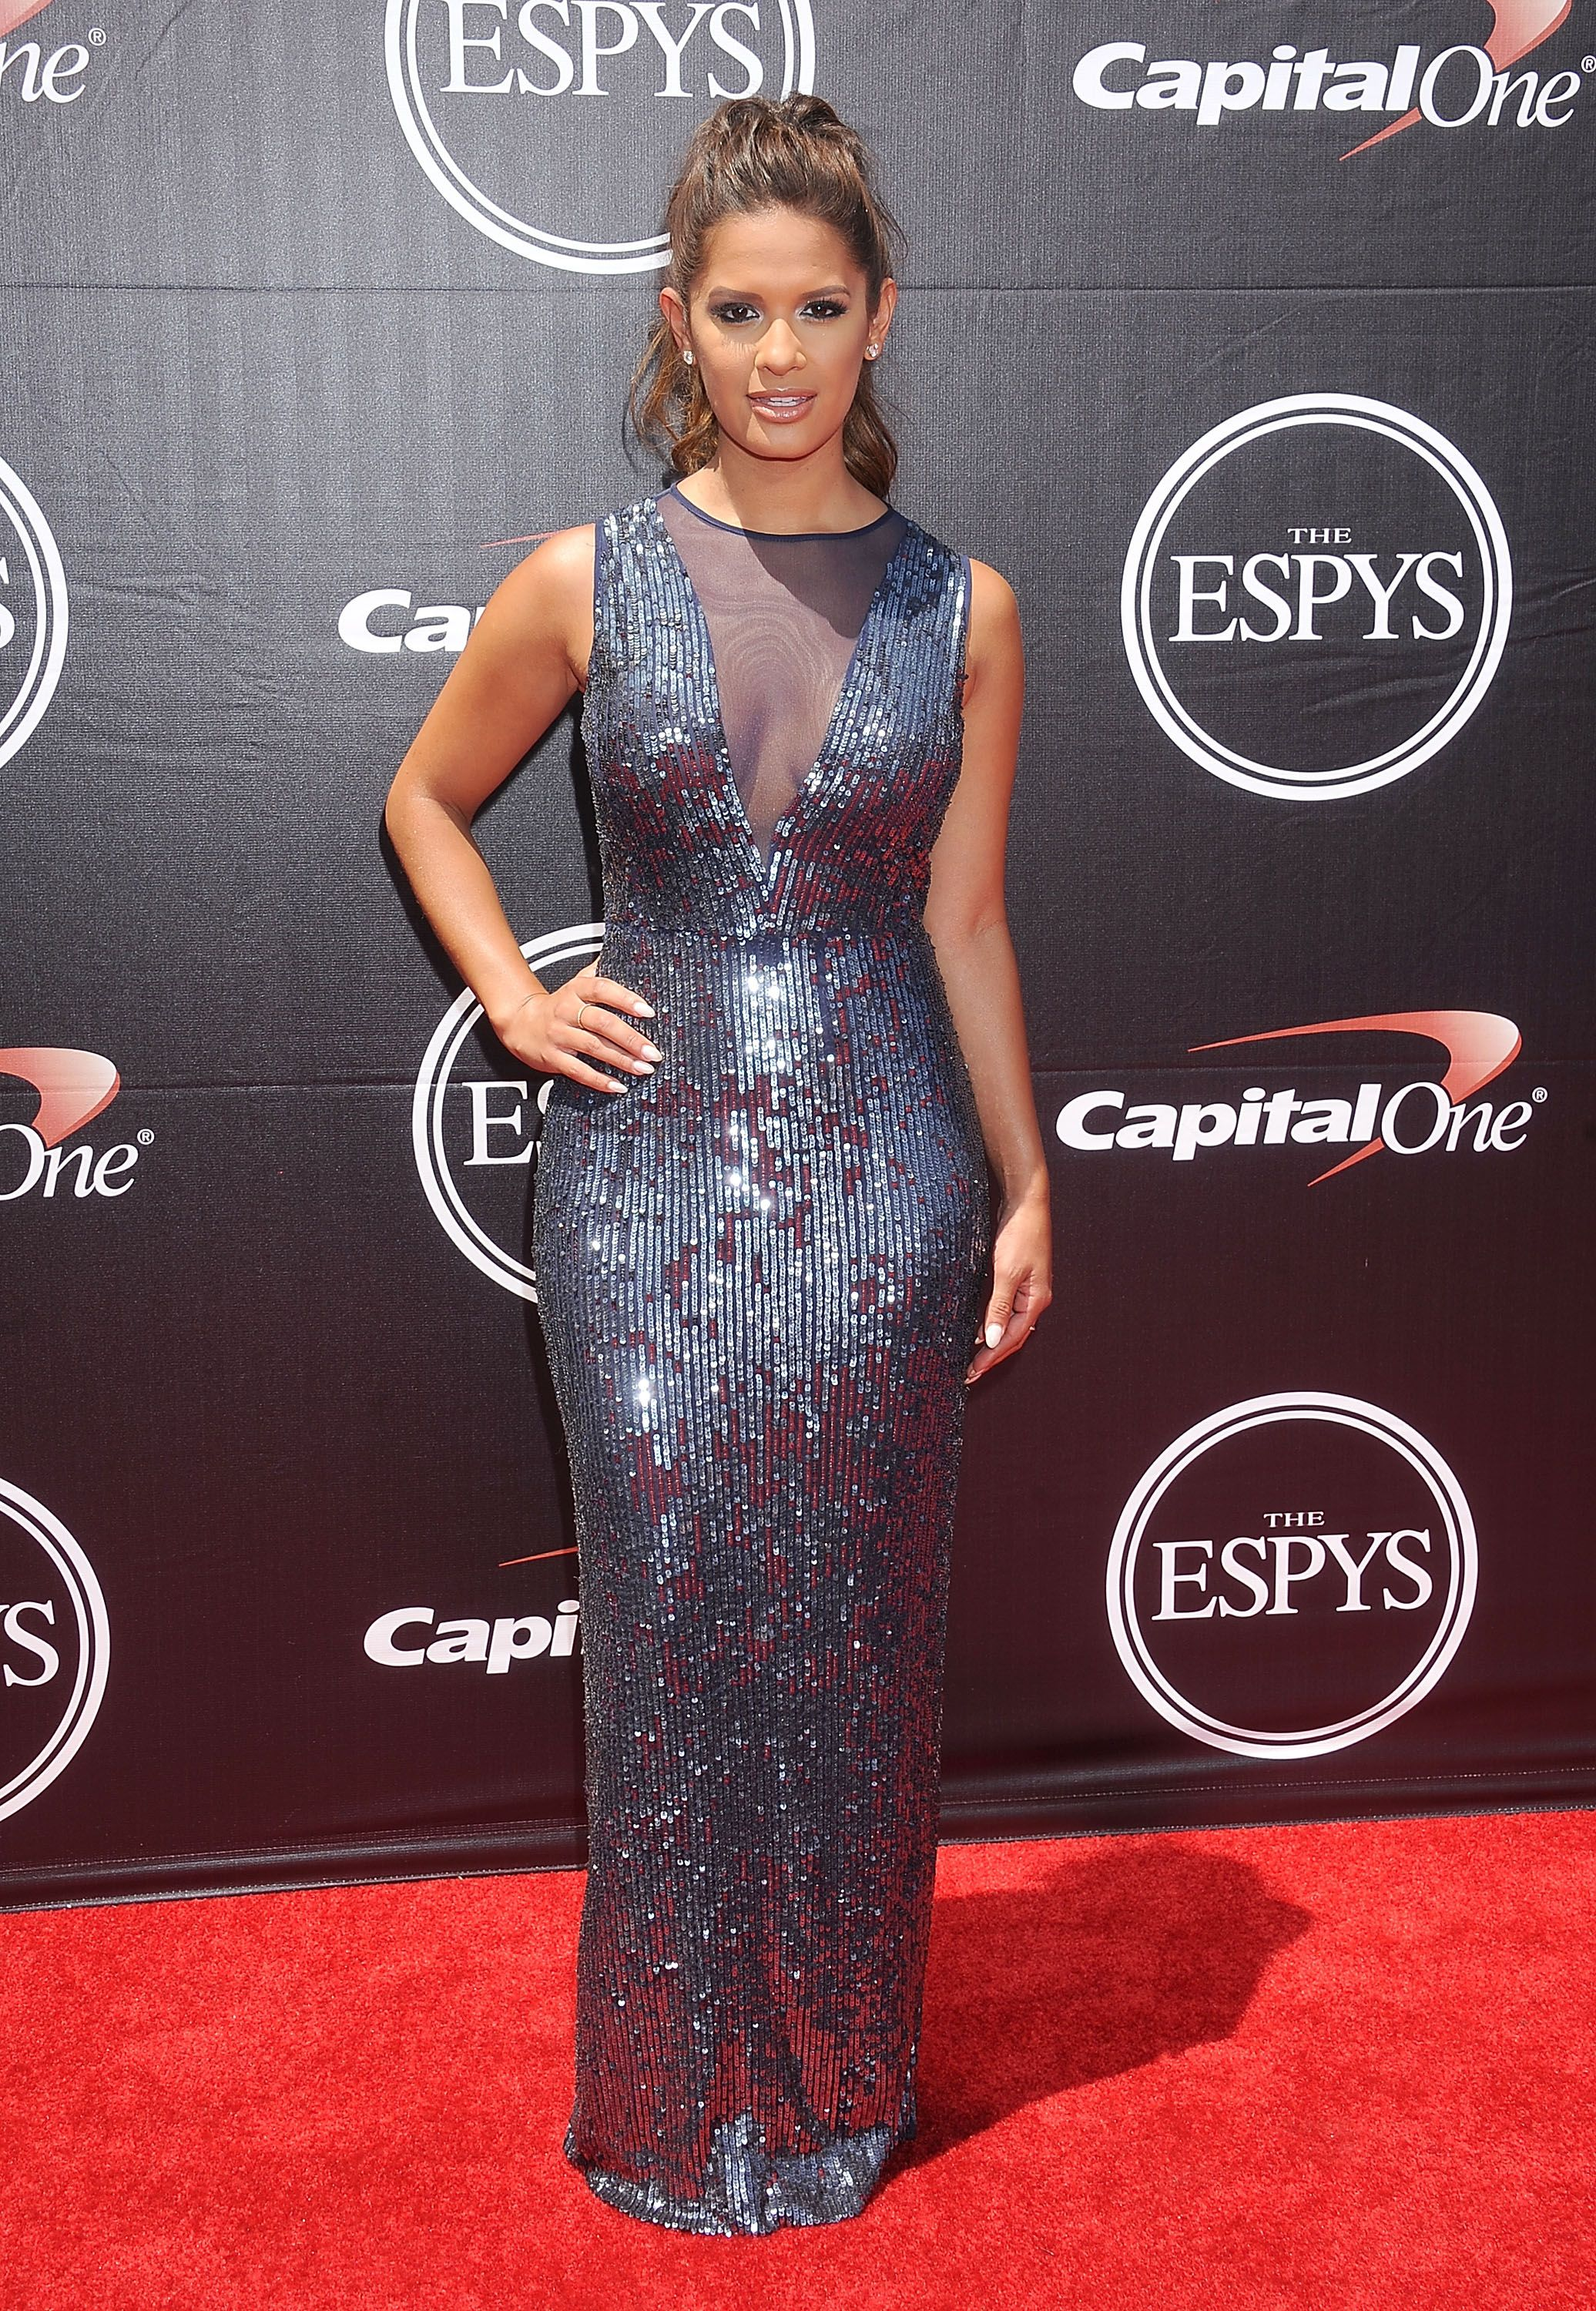 See What Caitlyn Jenner, Britney Spears, Halle Berry, and More Wore to the ESPY Awards  - ELLE.com